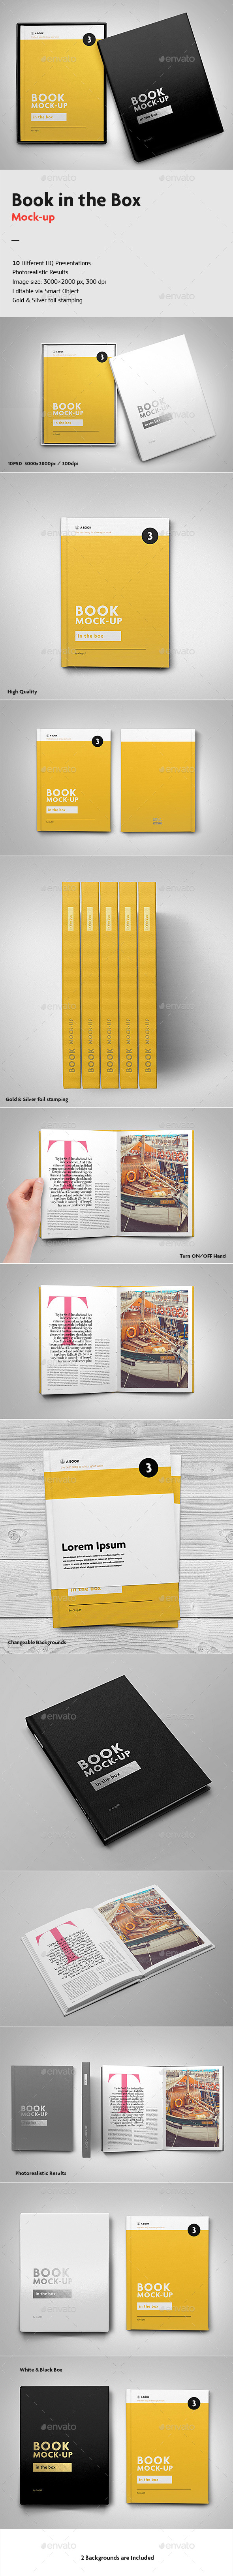 GraphicRiver Book in the Box Mock-up 10015011